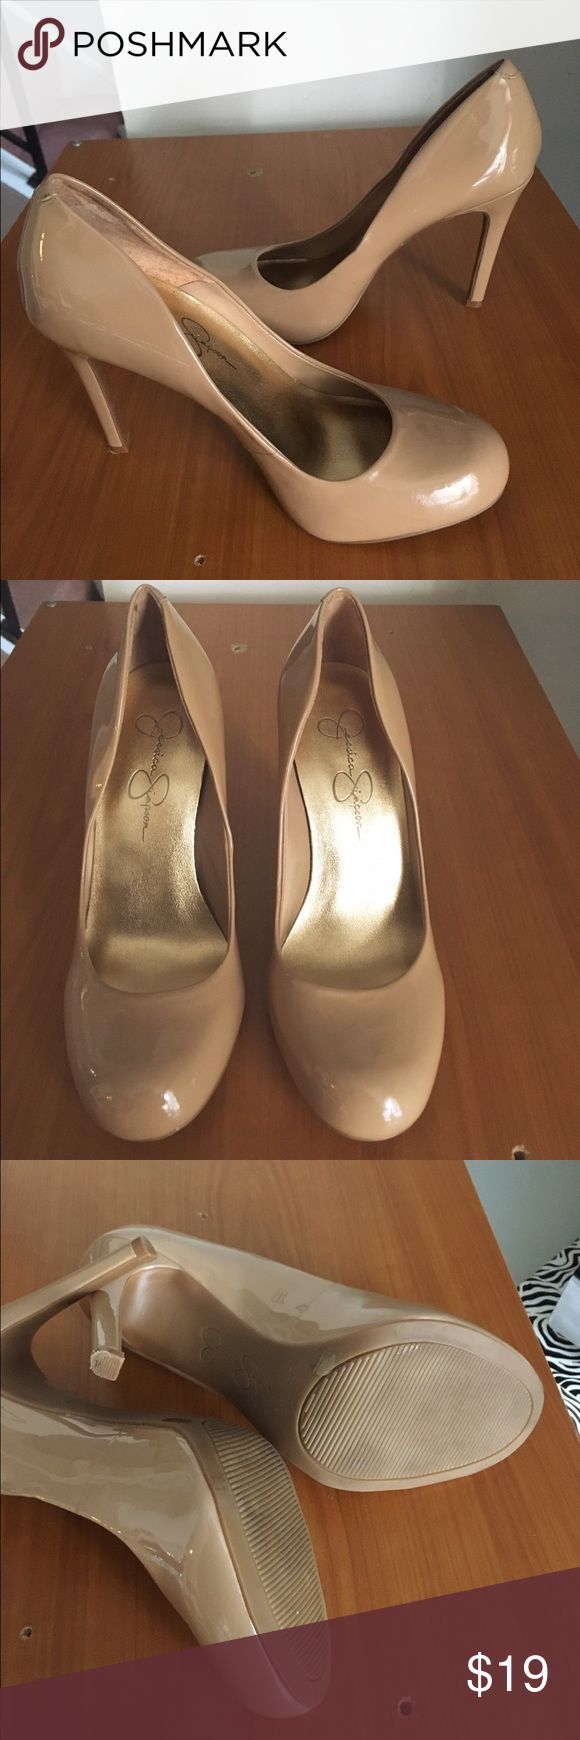 Jessica Simpson Nude Heels Color is like a nude cream tan. In very good condition with normal west on bottom also with the exception of a stain of some sort on one of the shoes. Please see pic #4. I have not tried to see if it will come out. Heel height is approx 4 inches. Price is reflective of that and is firm. Jessica Simpson Shoes Heels